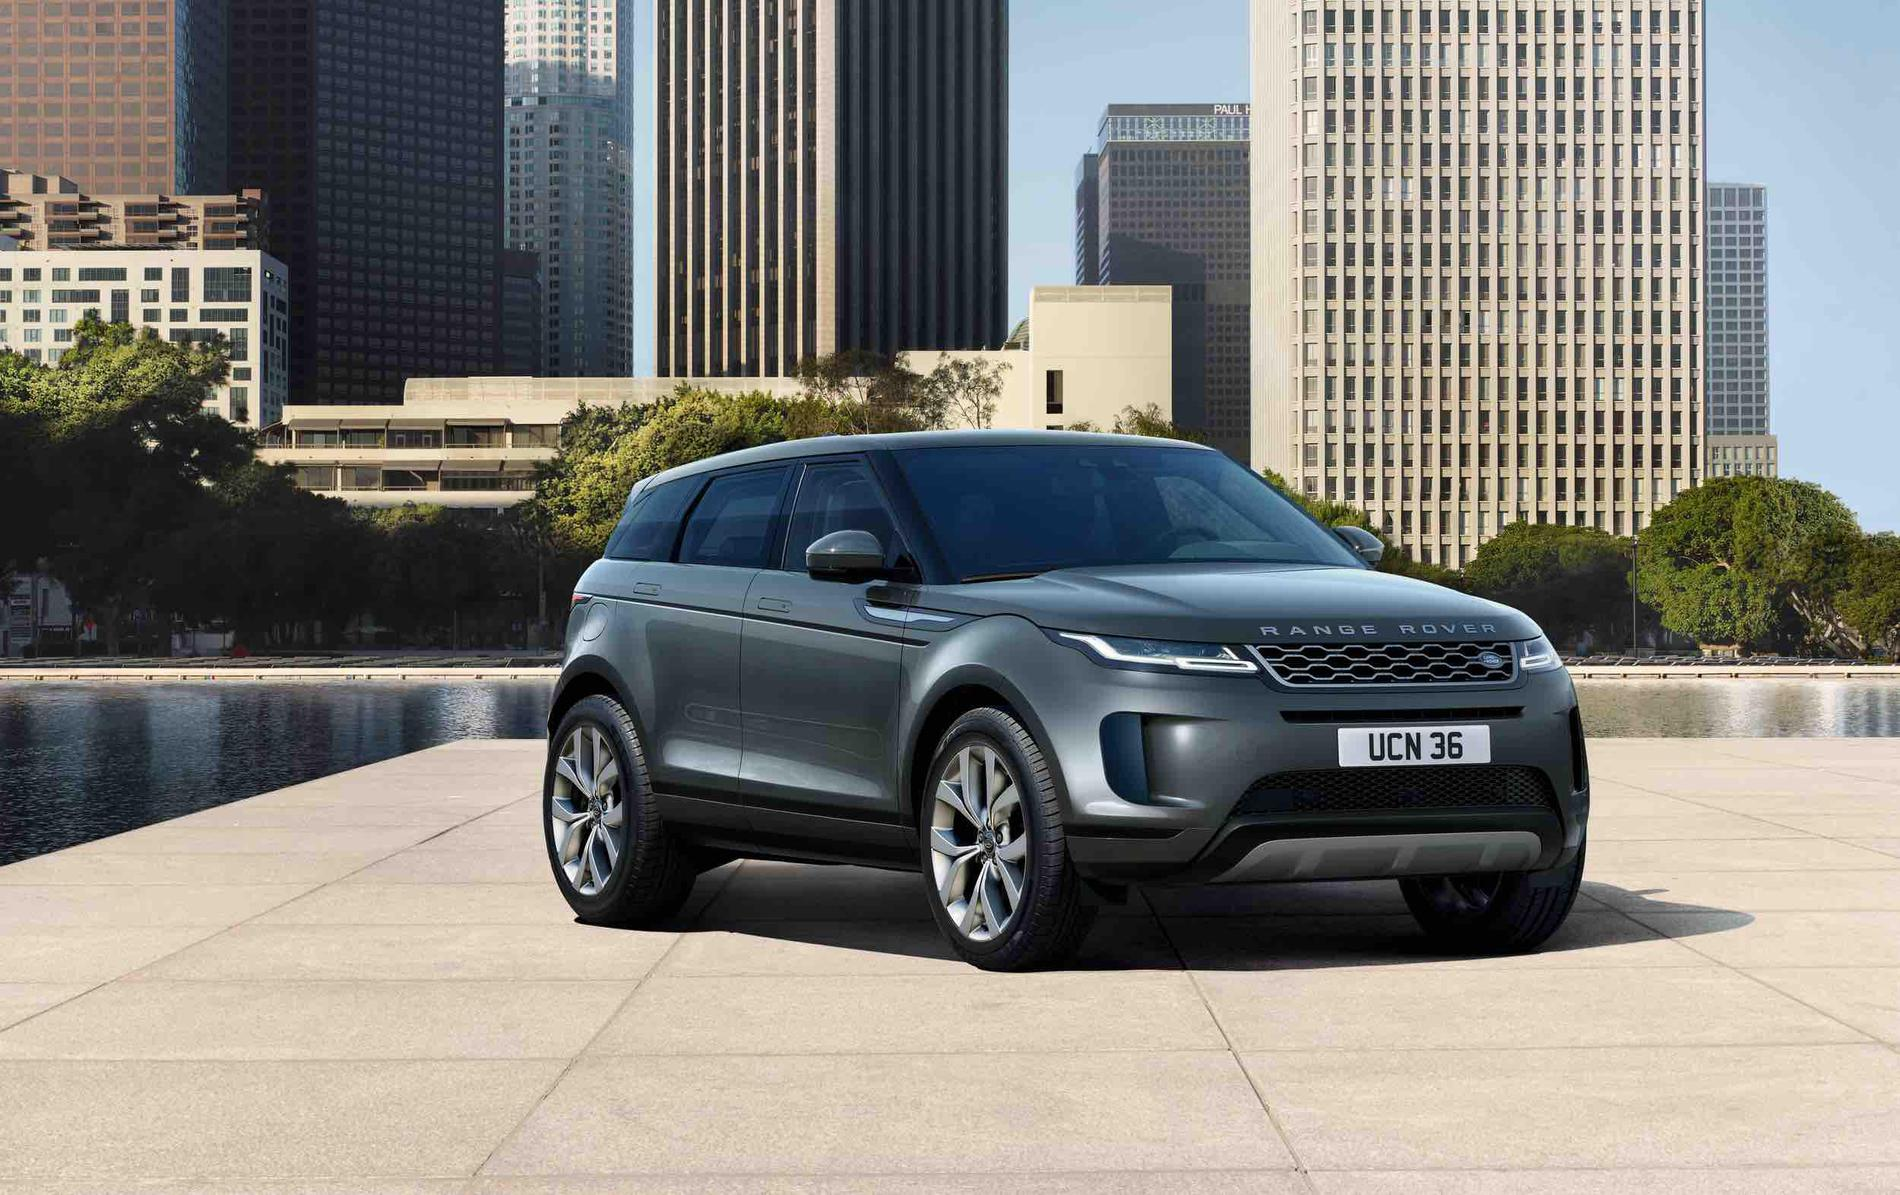 Rover Com Reviews >> South Brisbane Land Rover Land Rover Retailer In